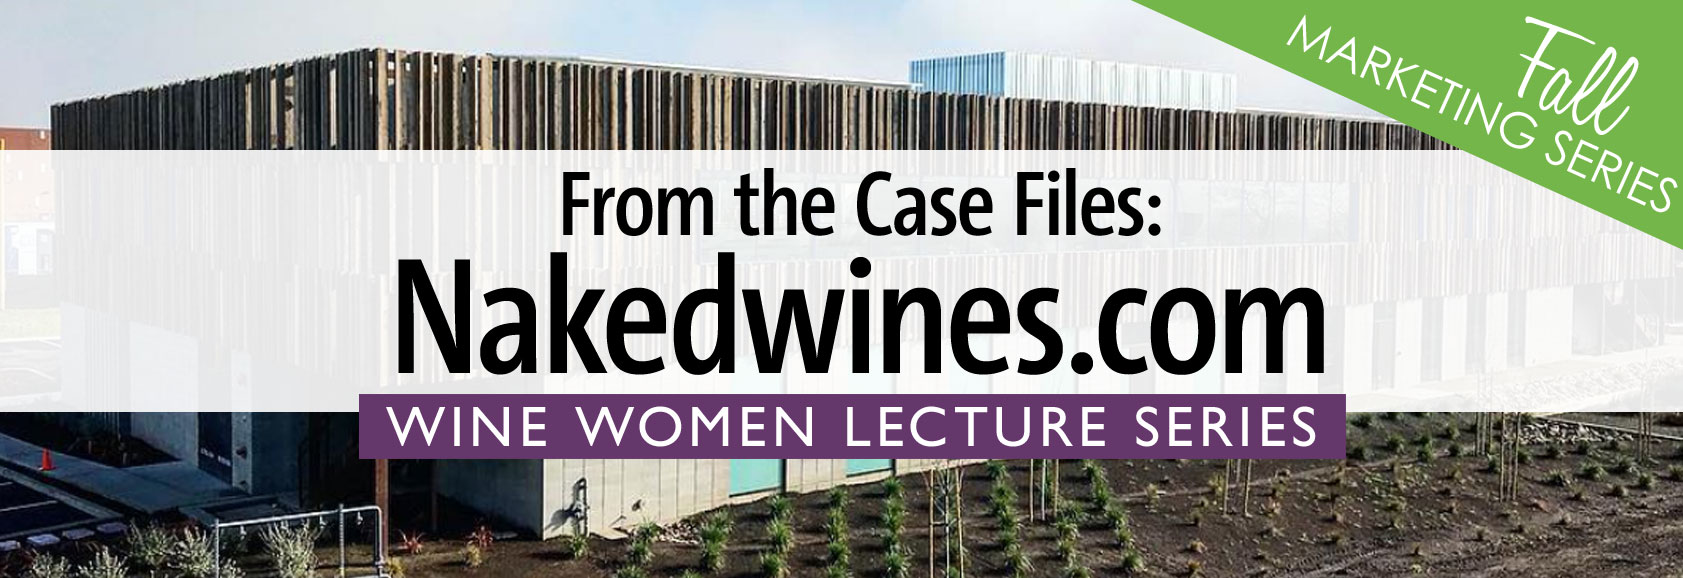 From the Case Files: Nakedwines.com